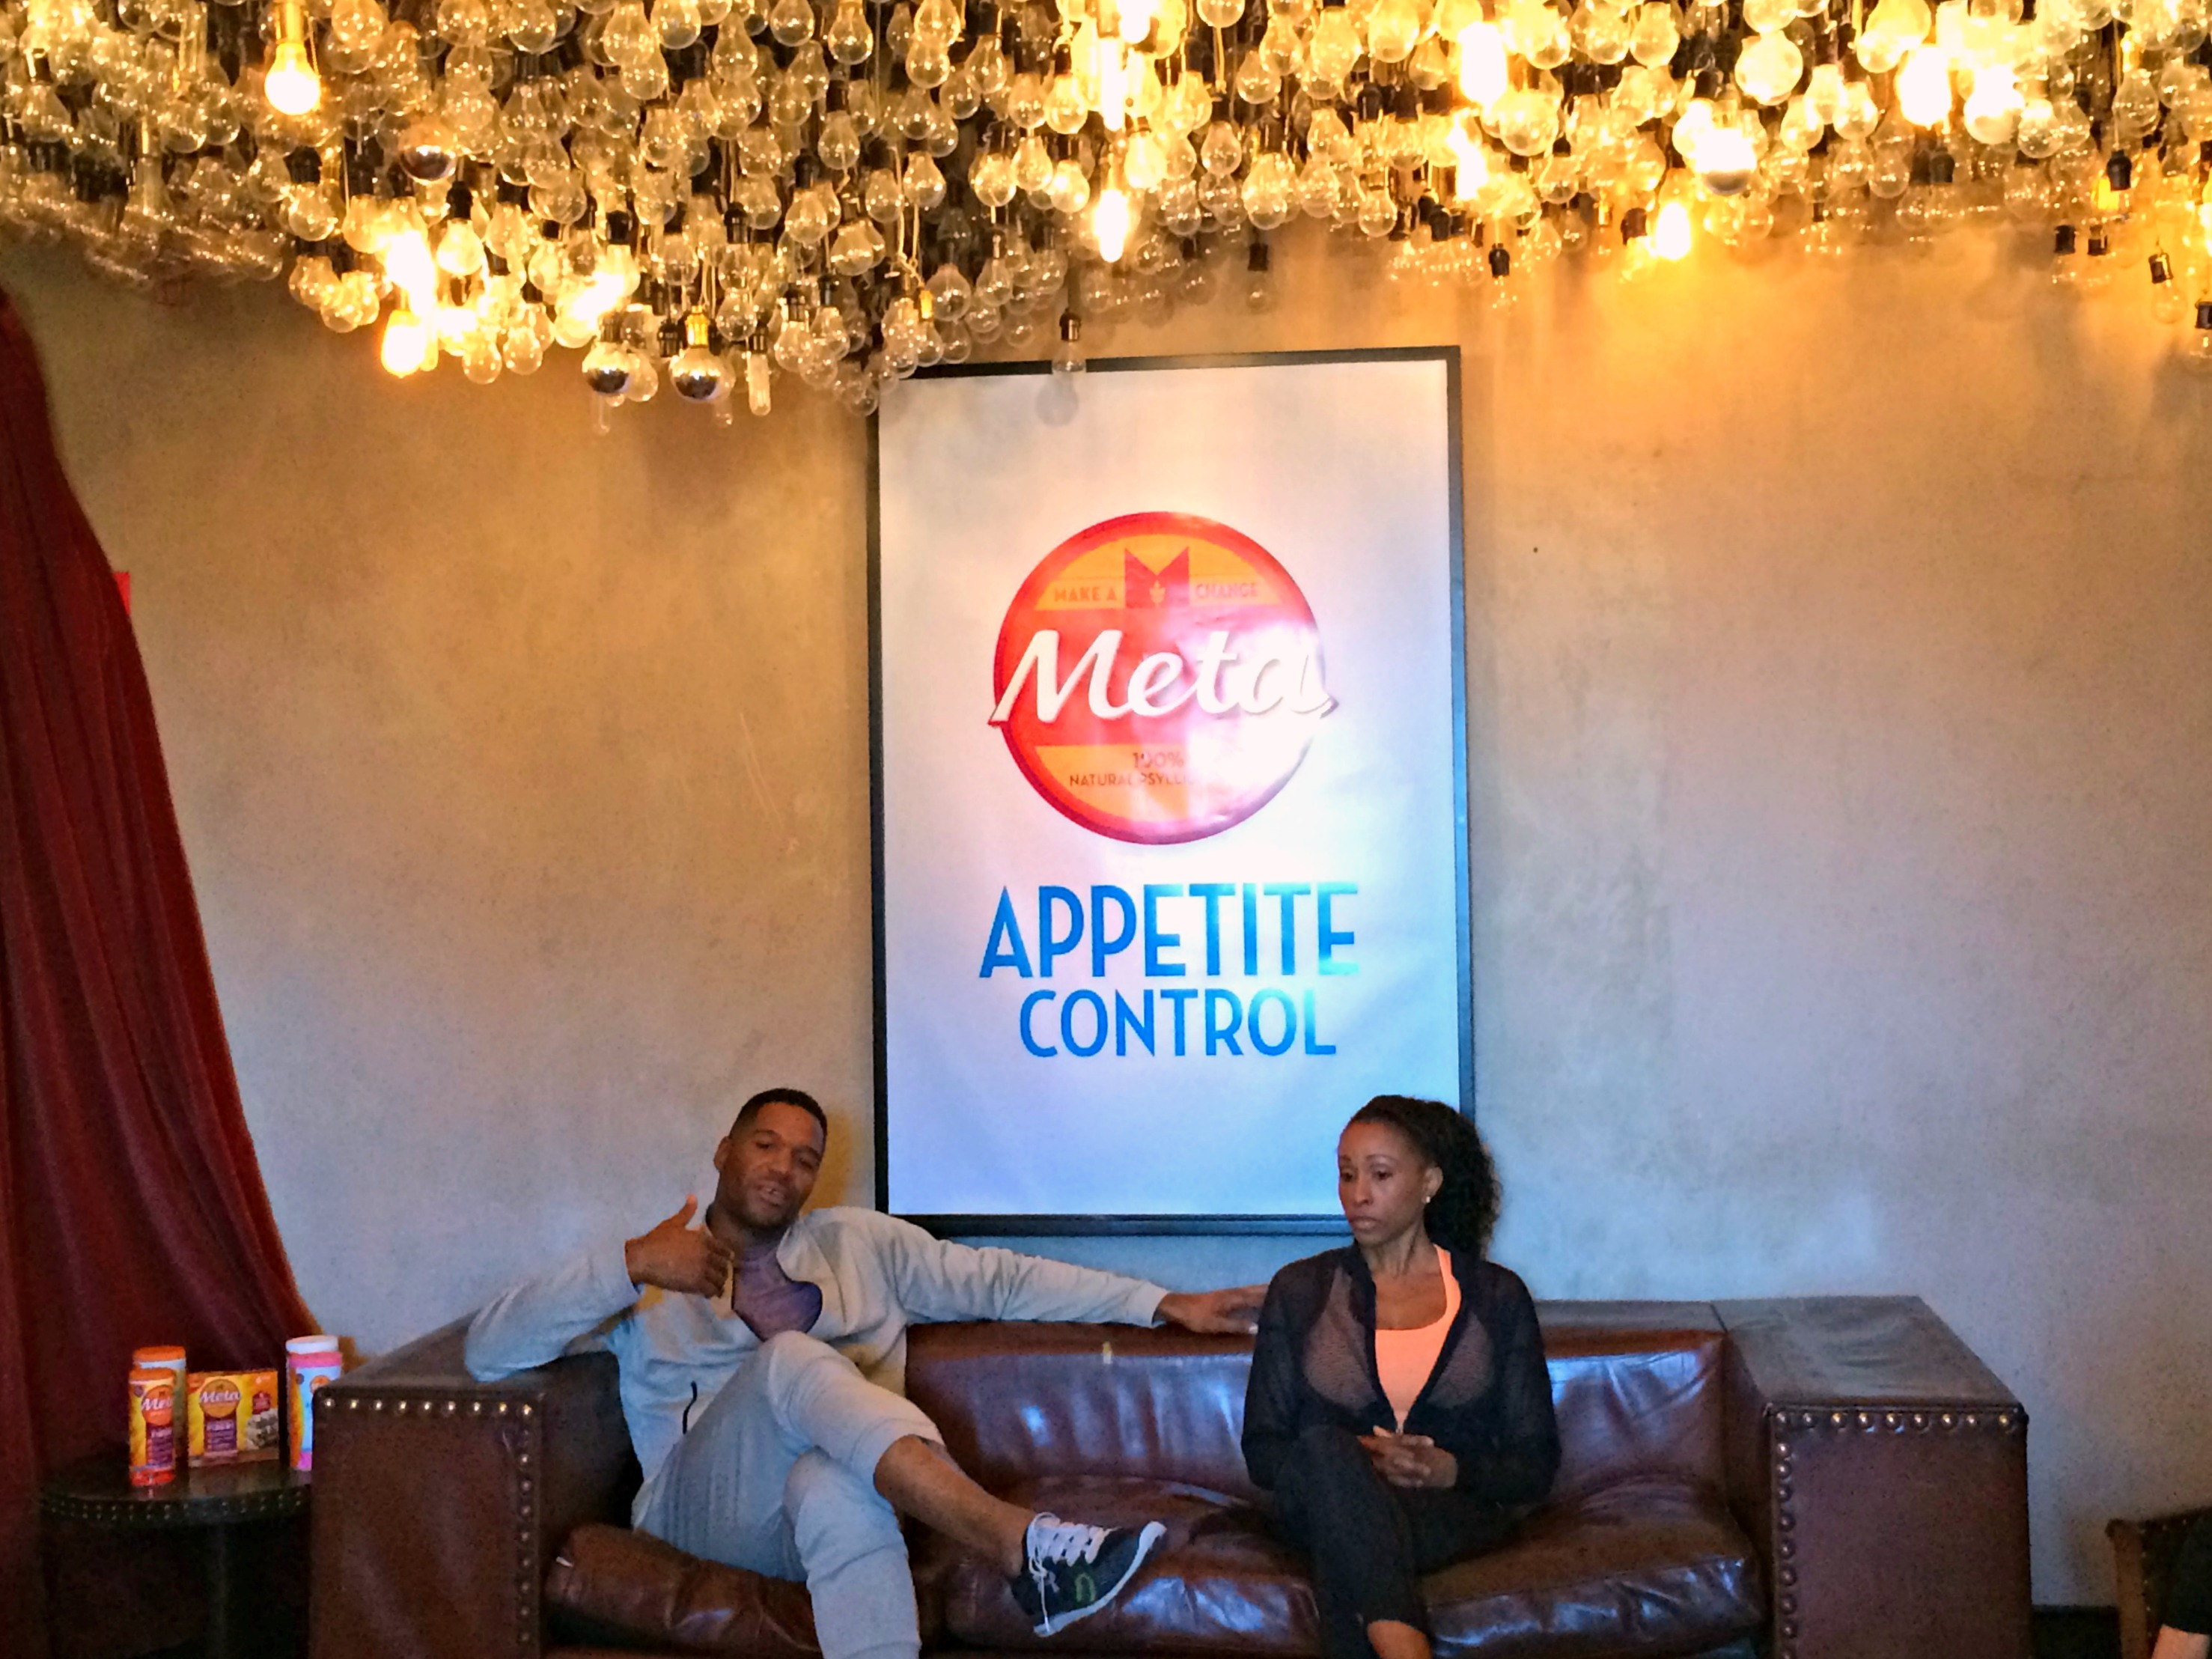 Meta Appetite Control health and fitness talk with Michael Strahan and Latreal Mitchell